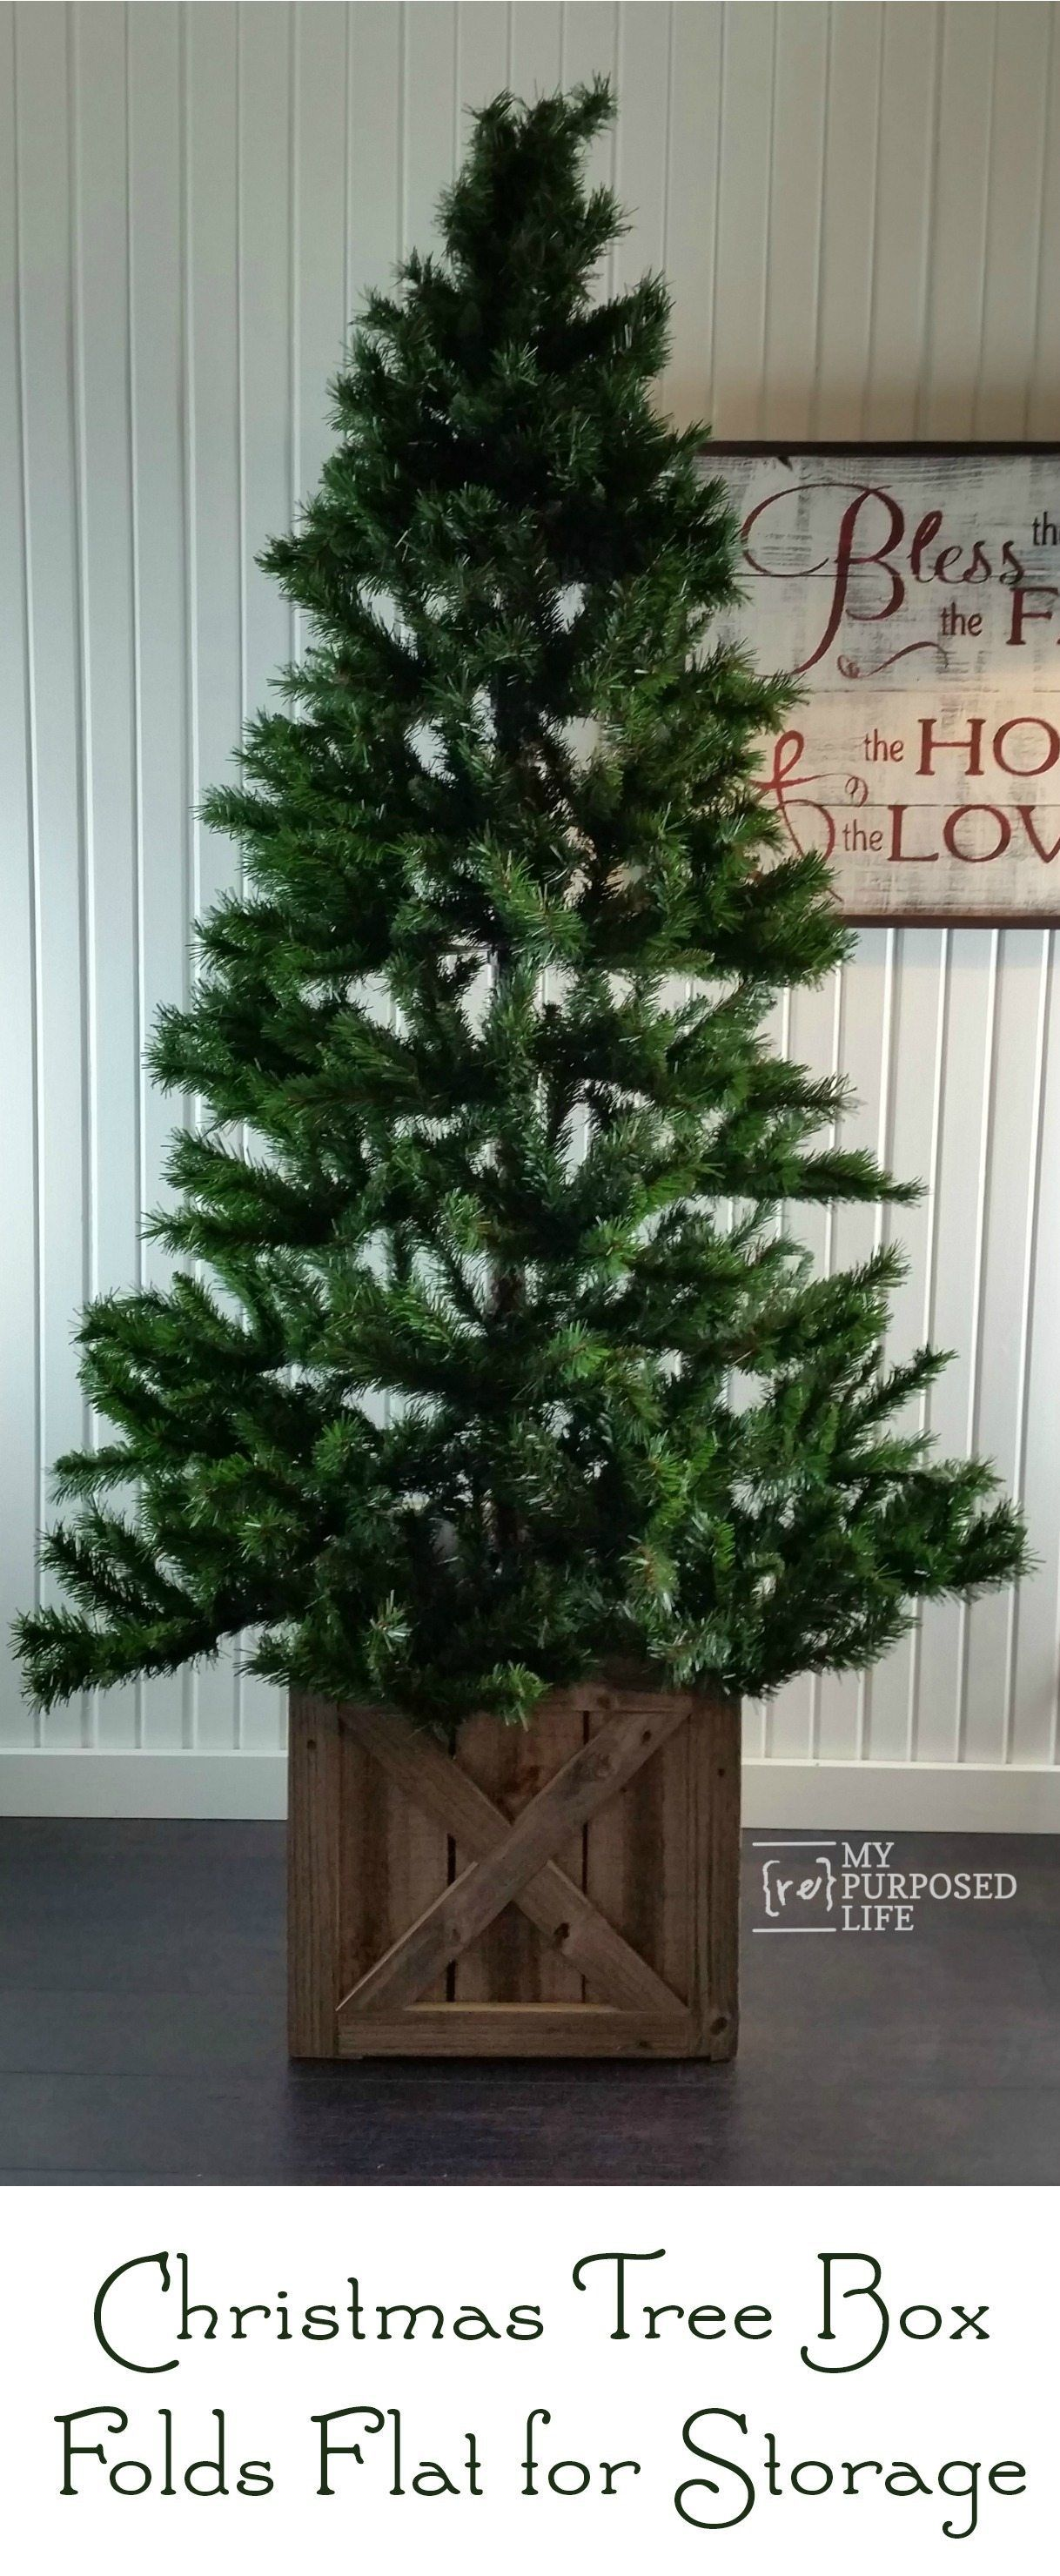 Christmas Tree Stand Box Folds Flat For Storage My Repurposed Life Rescue Re Imagine Repeat Christmas Tree Stand Diy Christmas Tree Box Stand Christmas Tree Base